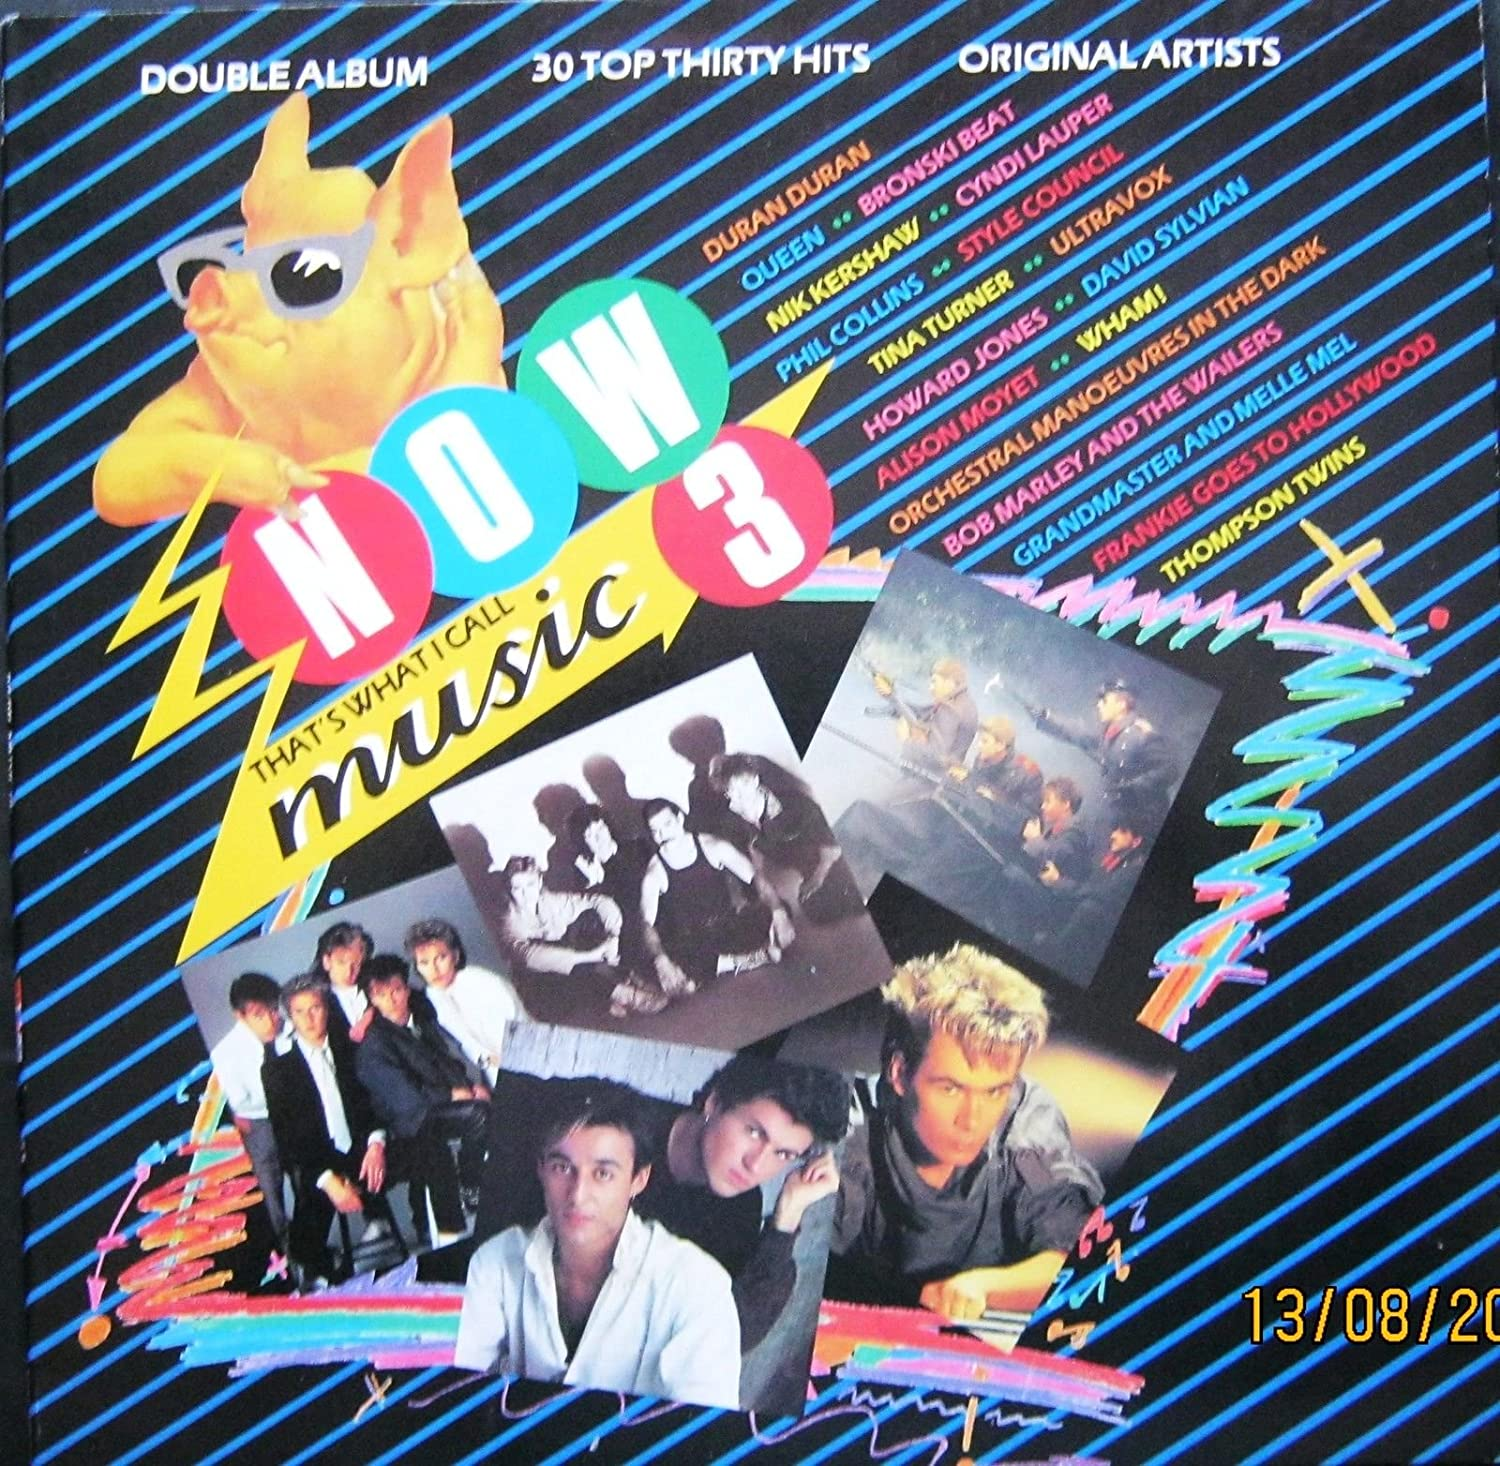 NOW THAT'S WHAT I CALL MUSIC 3,Double Vinyl LP  -QUEEN,BLUEBELLS,WHAM!,MADNESS: Amazon.co.uk: Music